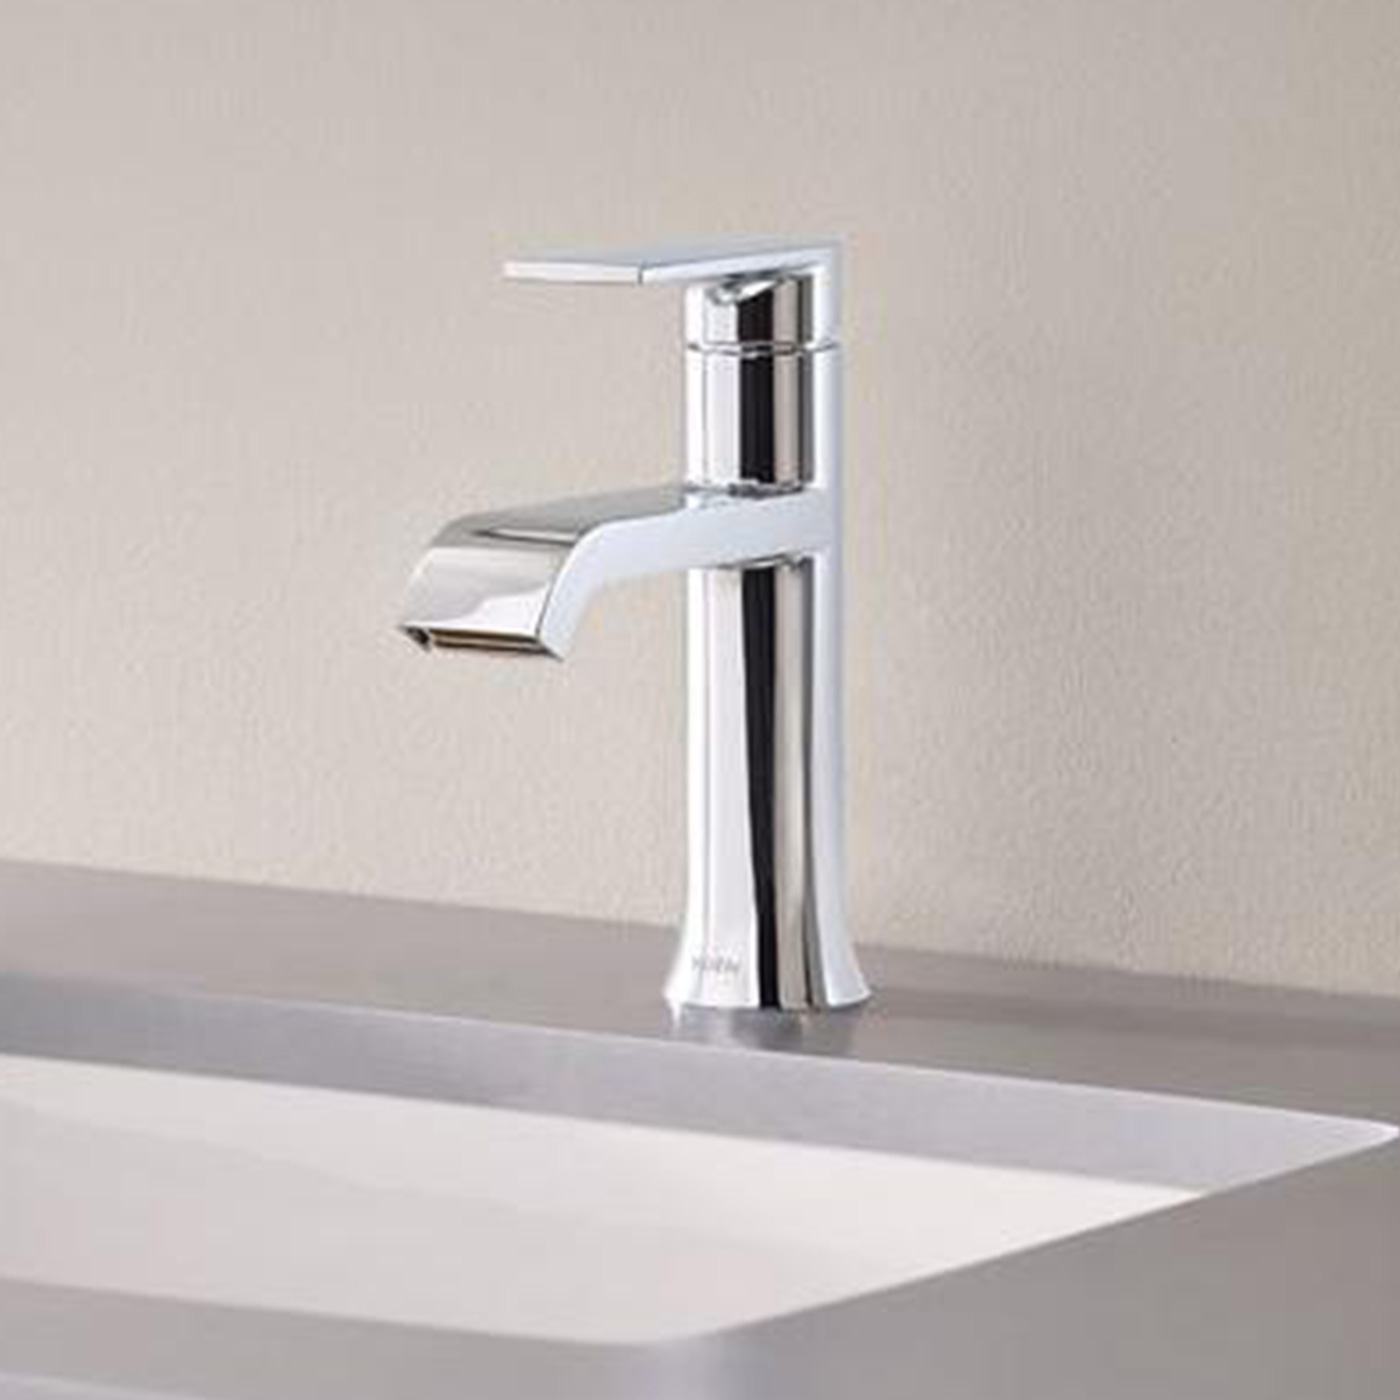 Bathroom Faucets for Your Sink, Shower Head and Bathtub - The Home ...